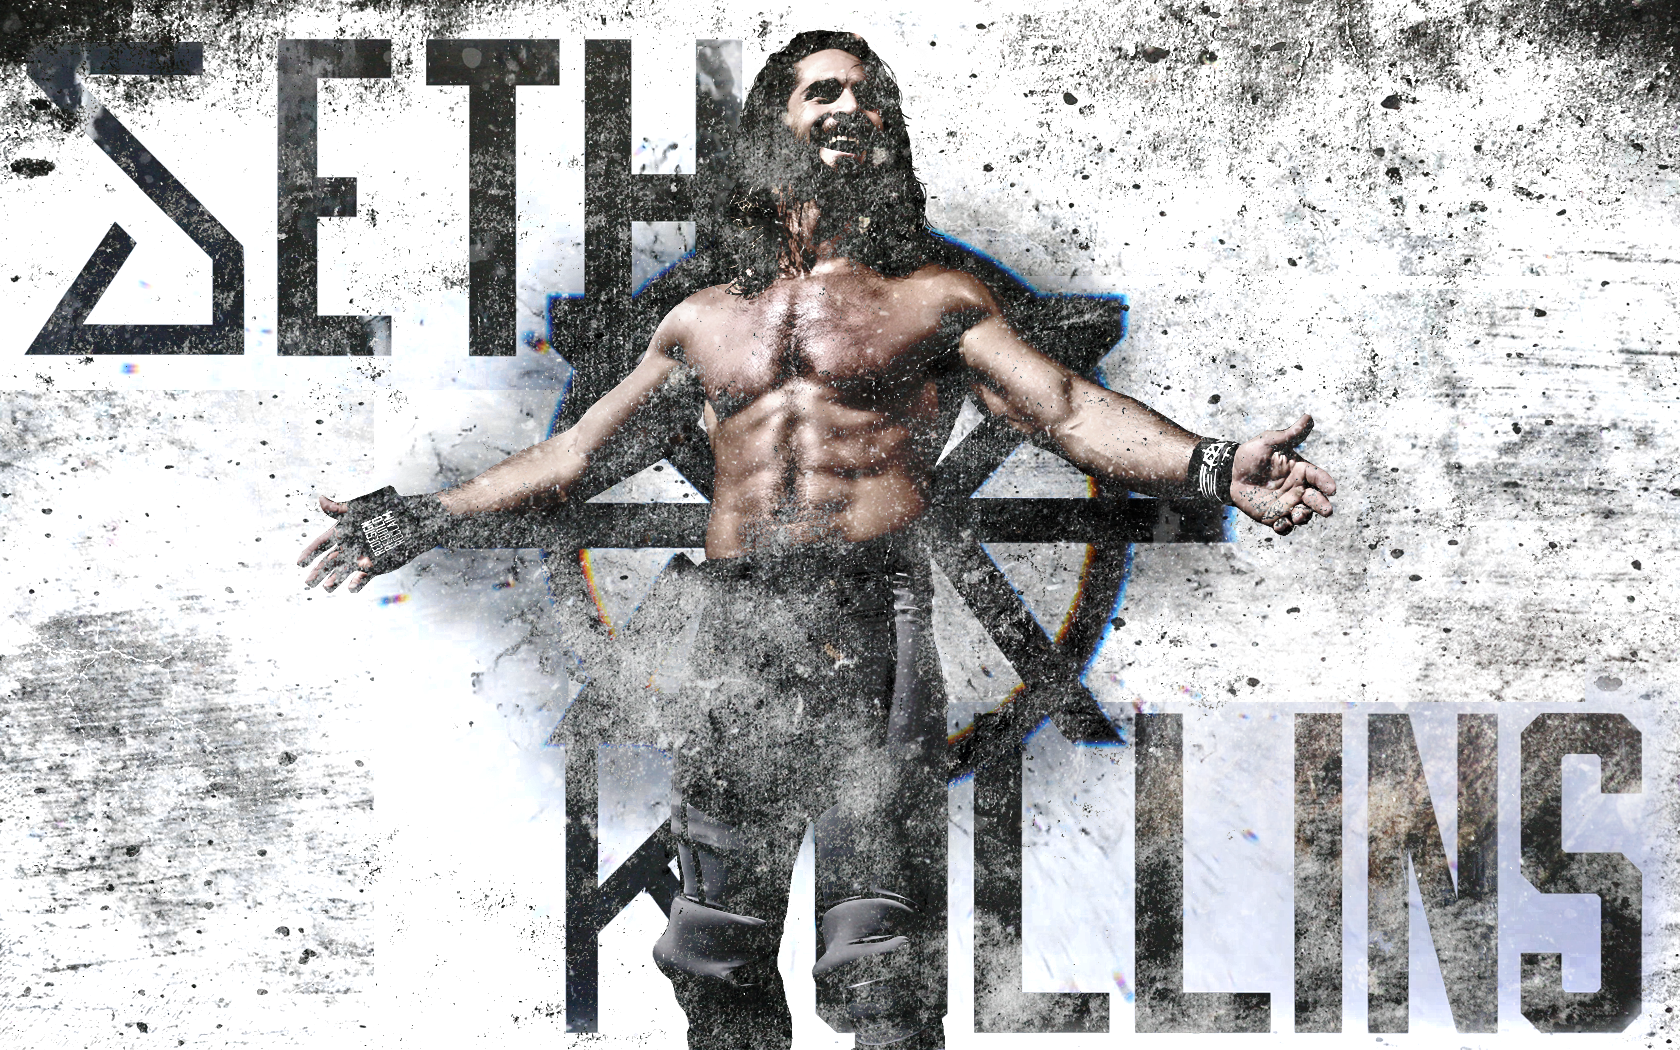 Wwe Seth Rollins 4th Wallpaper 2016 By Lastbreathgfx On Deviantart